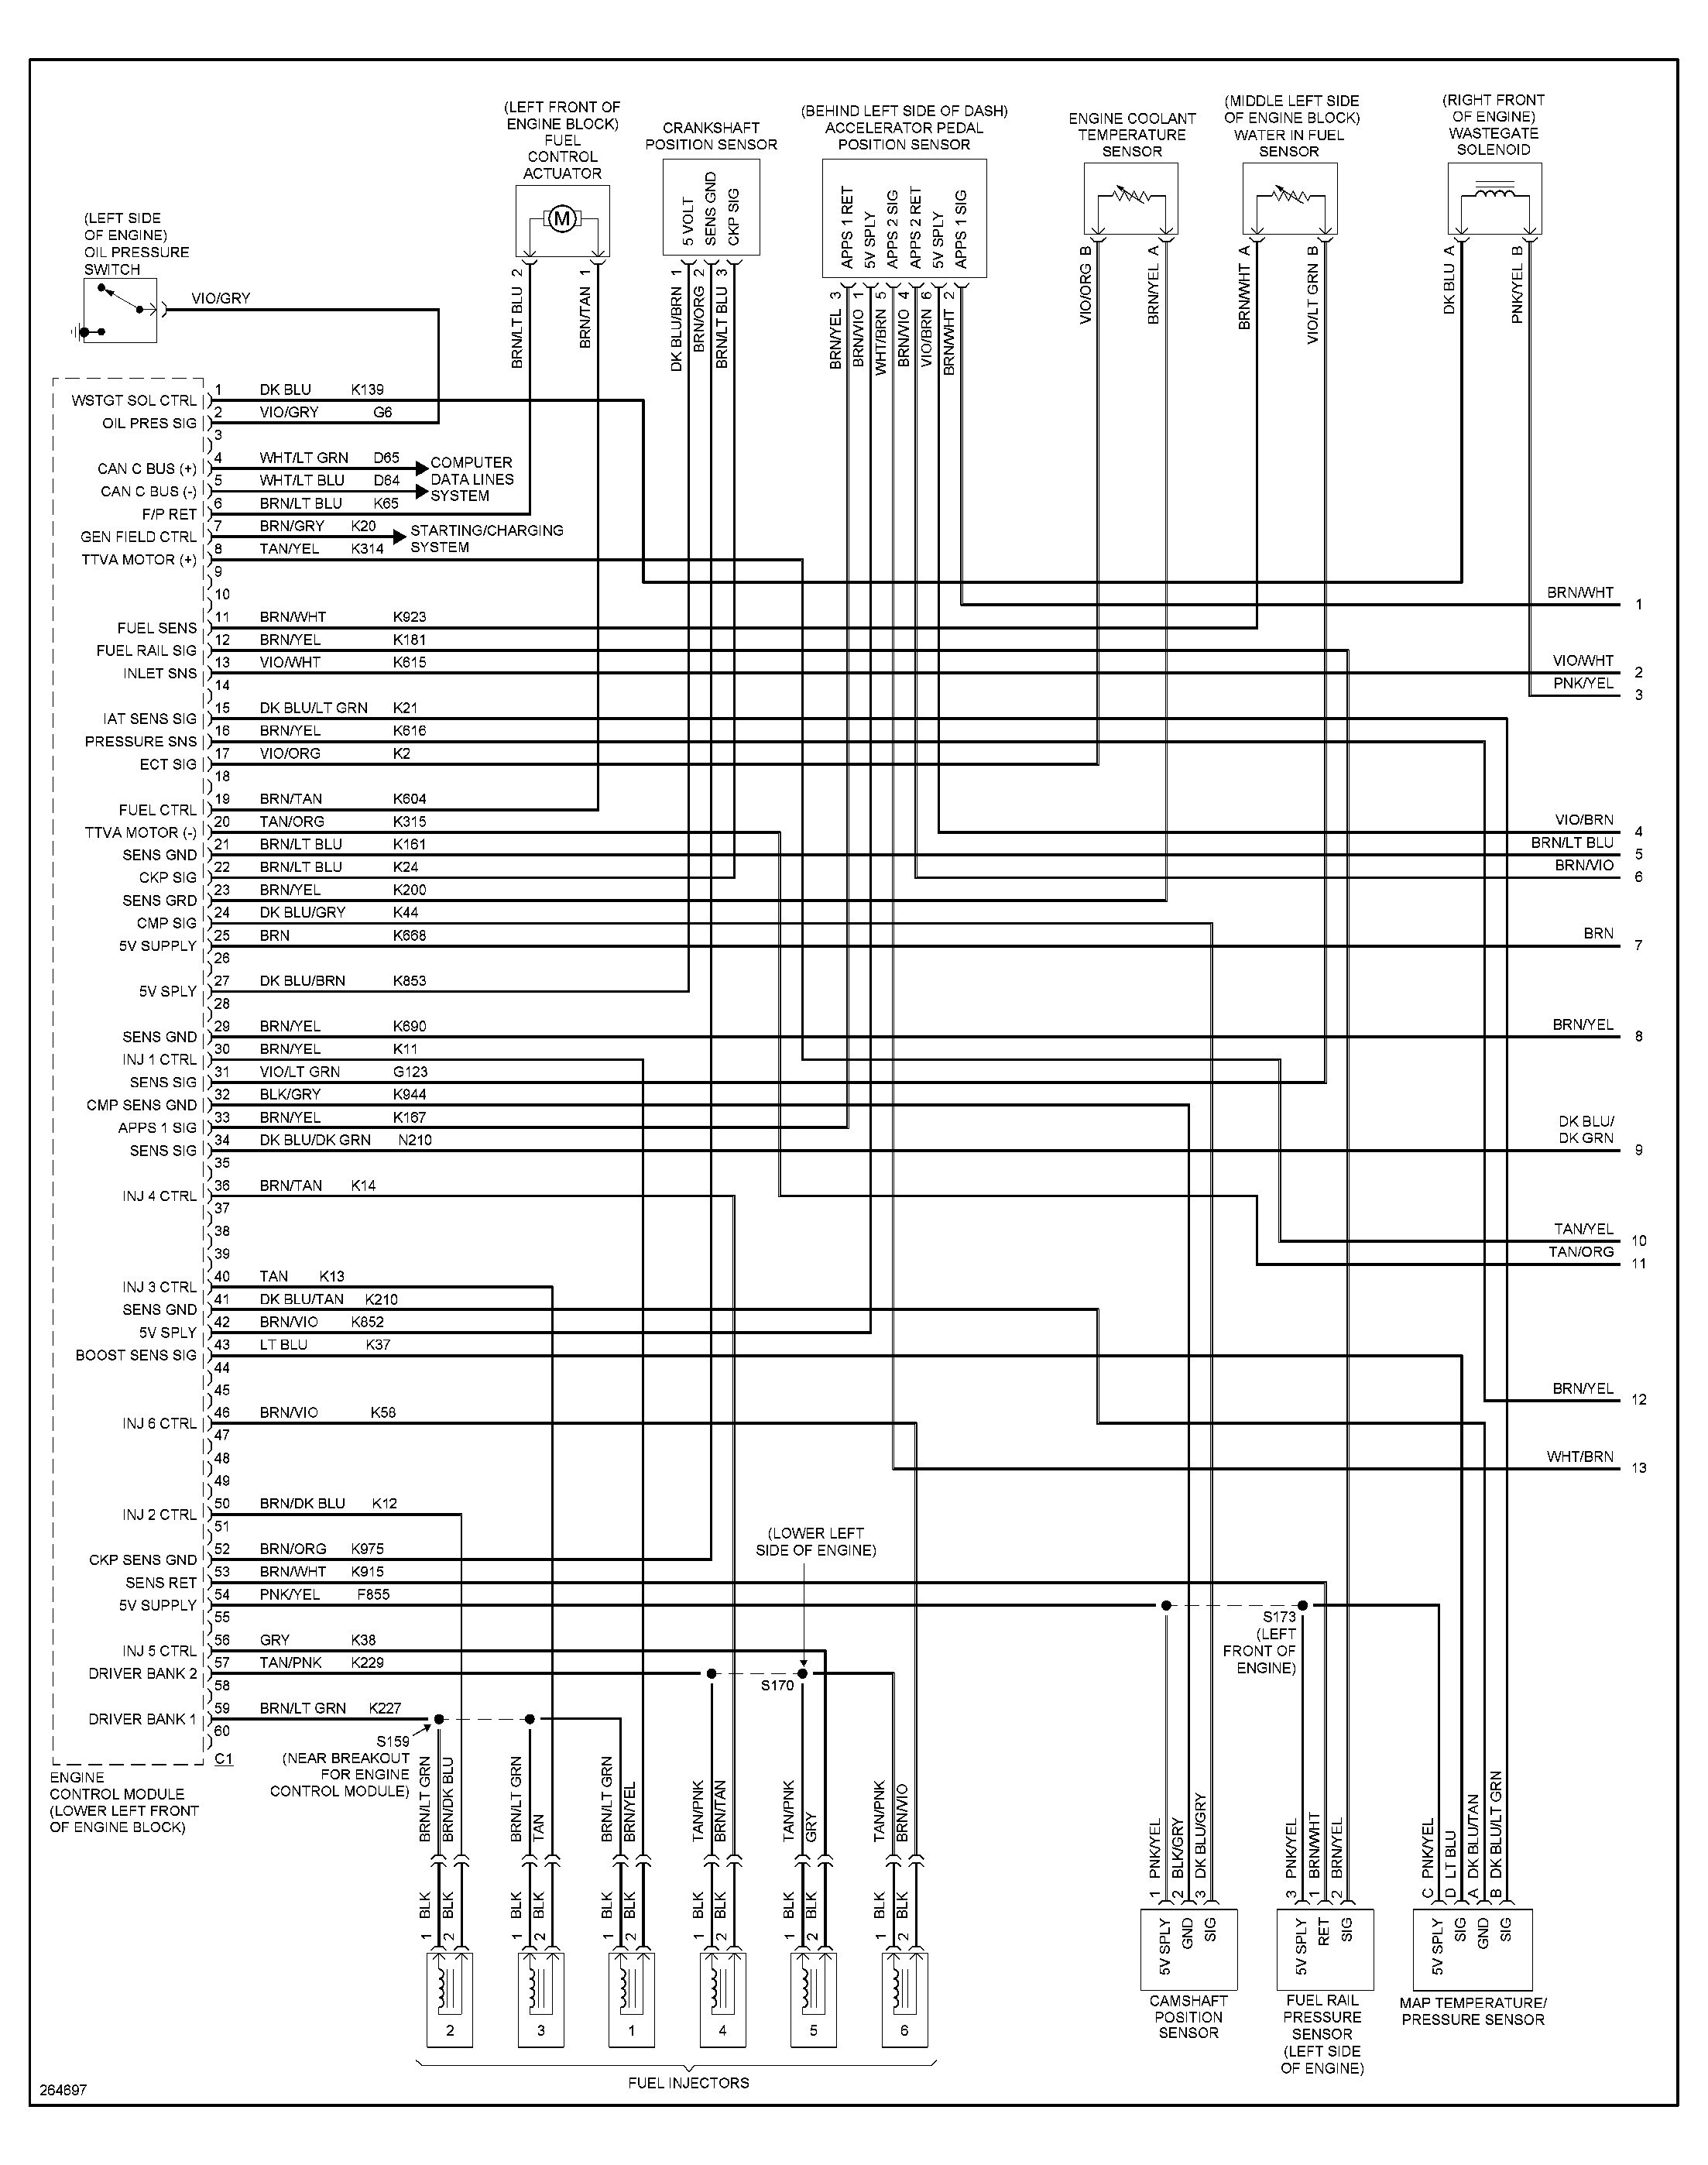 1998 Dodge Ram 1500 Trailer Wiring Diagram New Truck 17 8 - 98 Dodge Ram Trailer Wiring Diagram